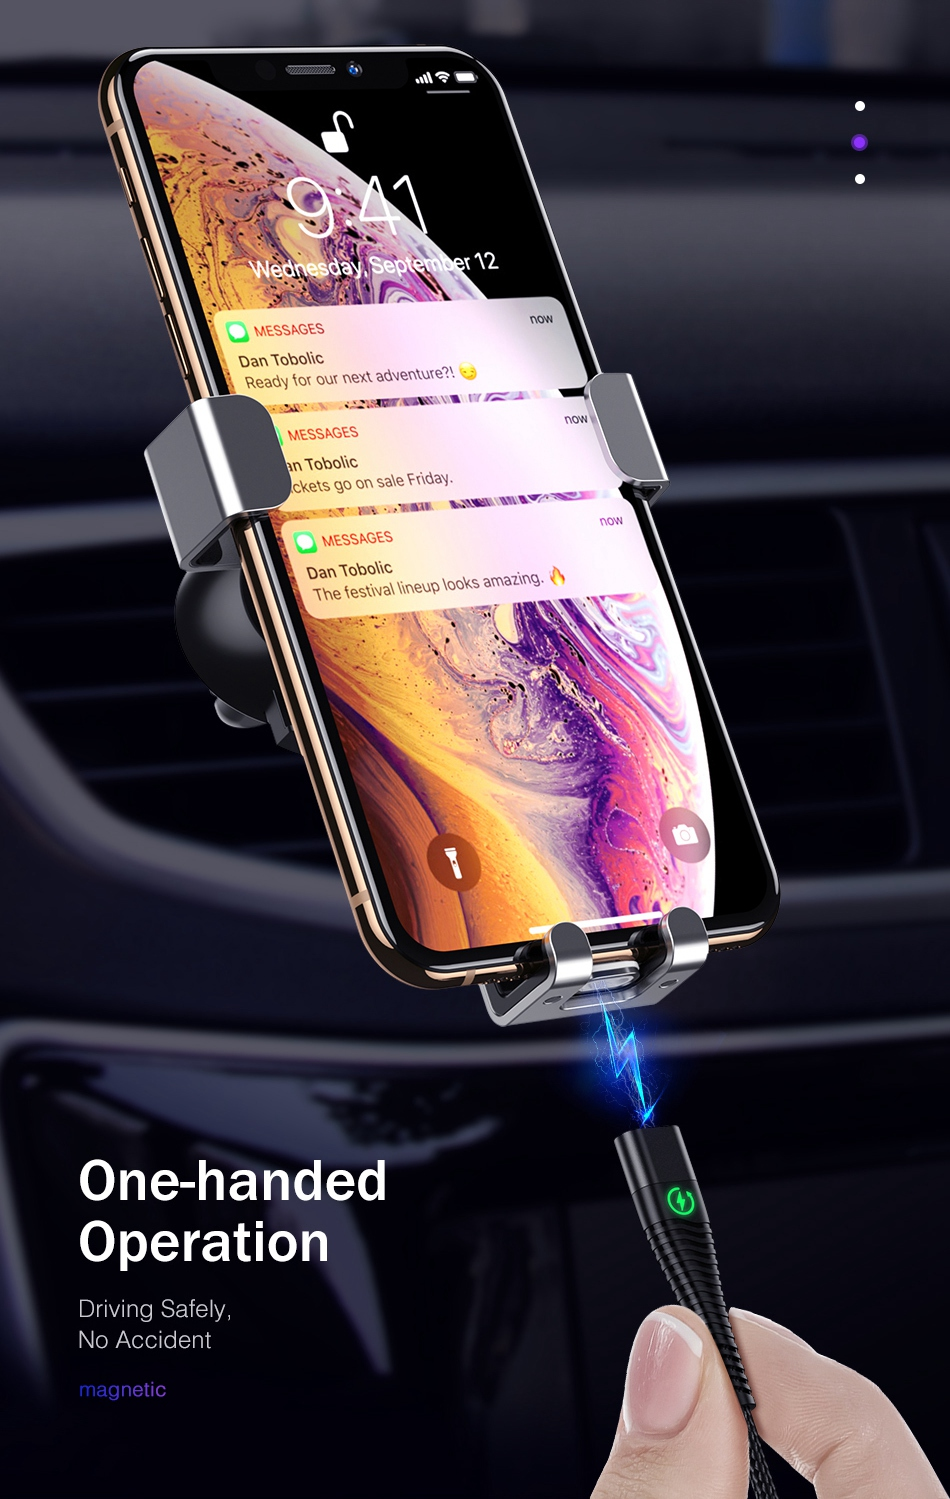 ROCK LED Light Magnetic Charge Cable Micro USB Cable For iPhone XR XS Max X Magnet Charger USB Type C Charging Wire Cord 1M 2M 6